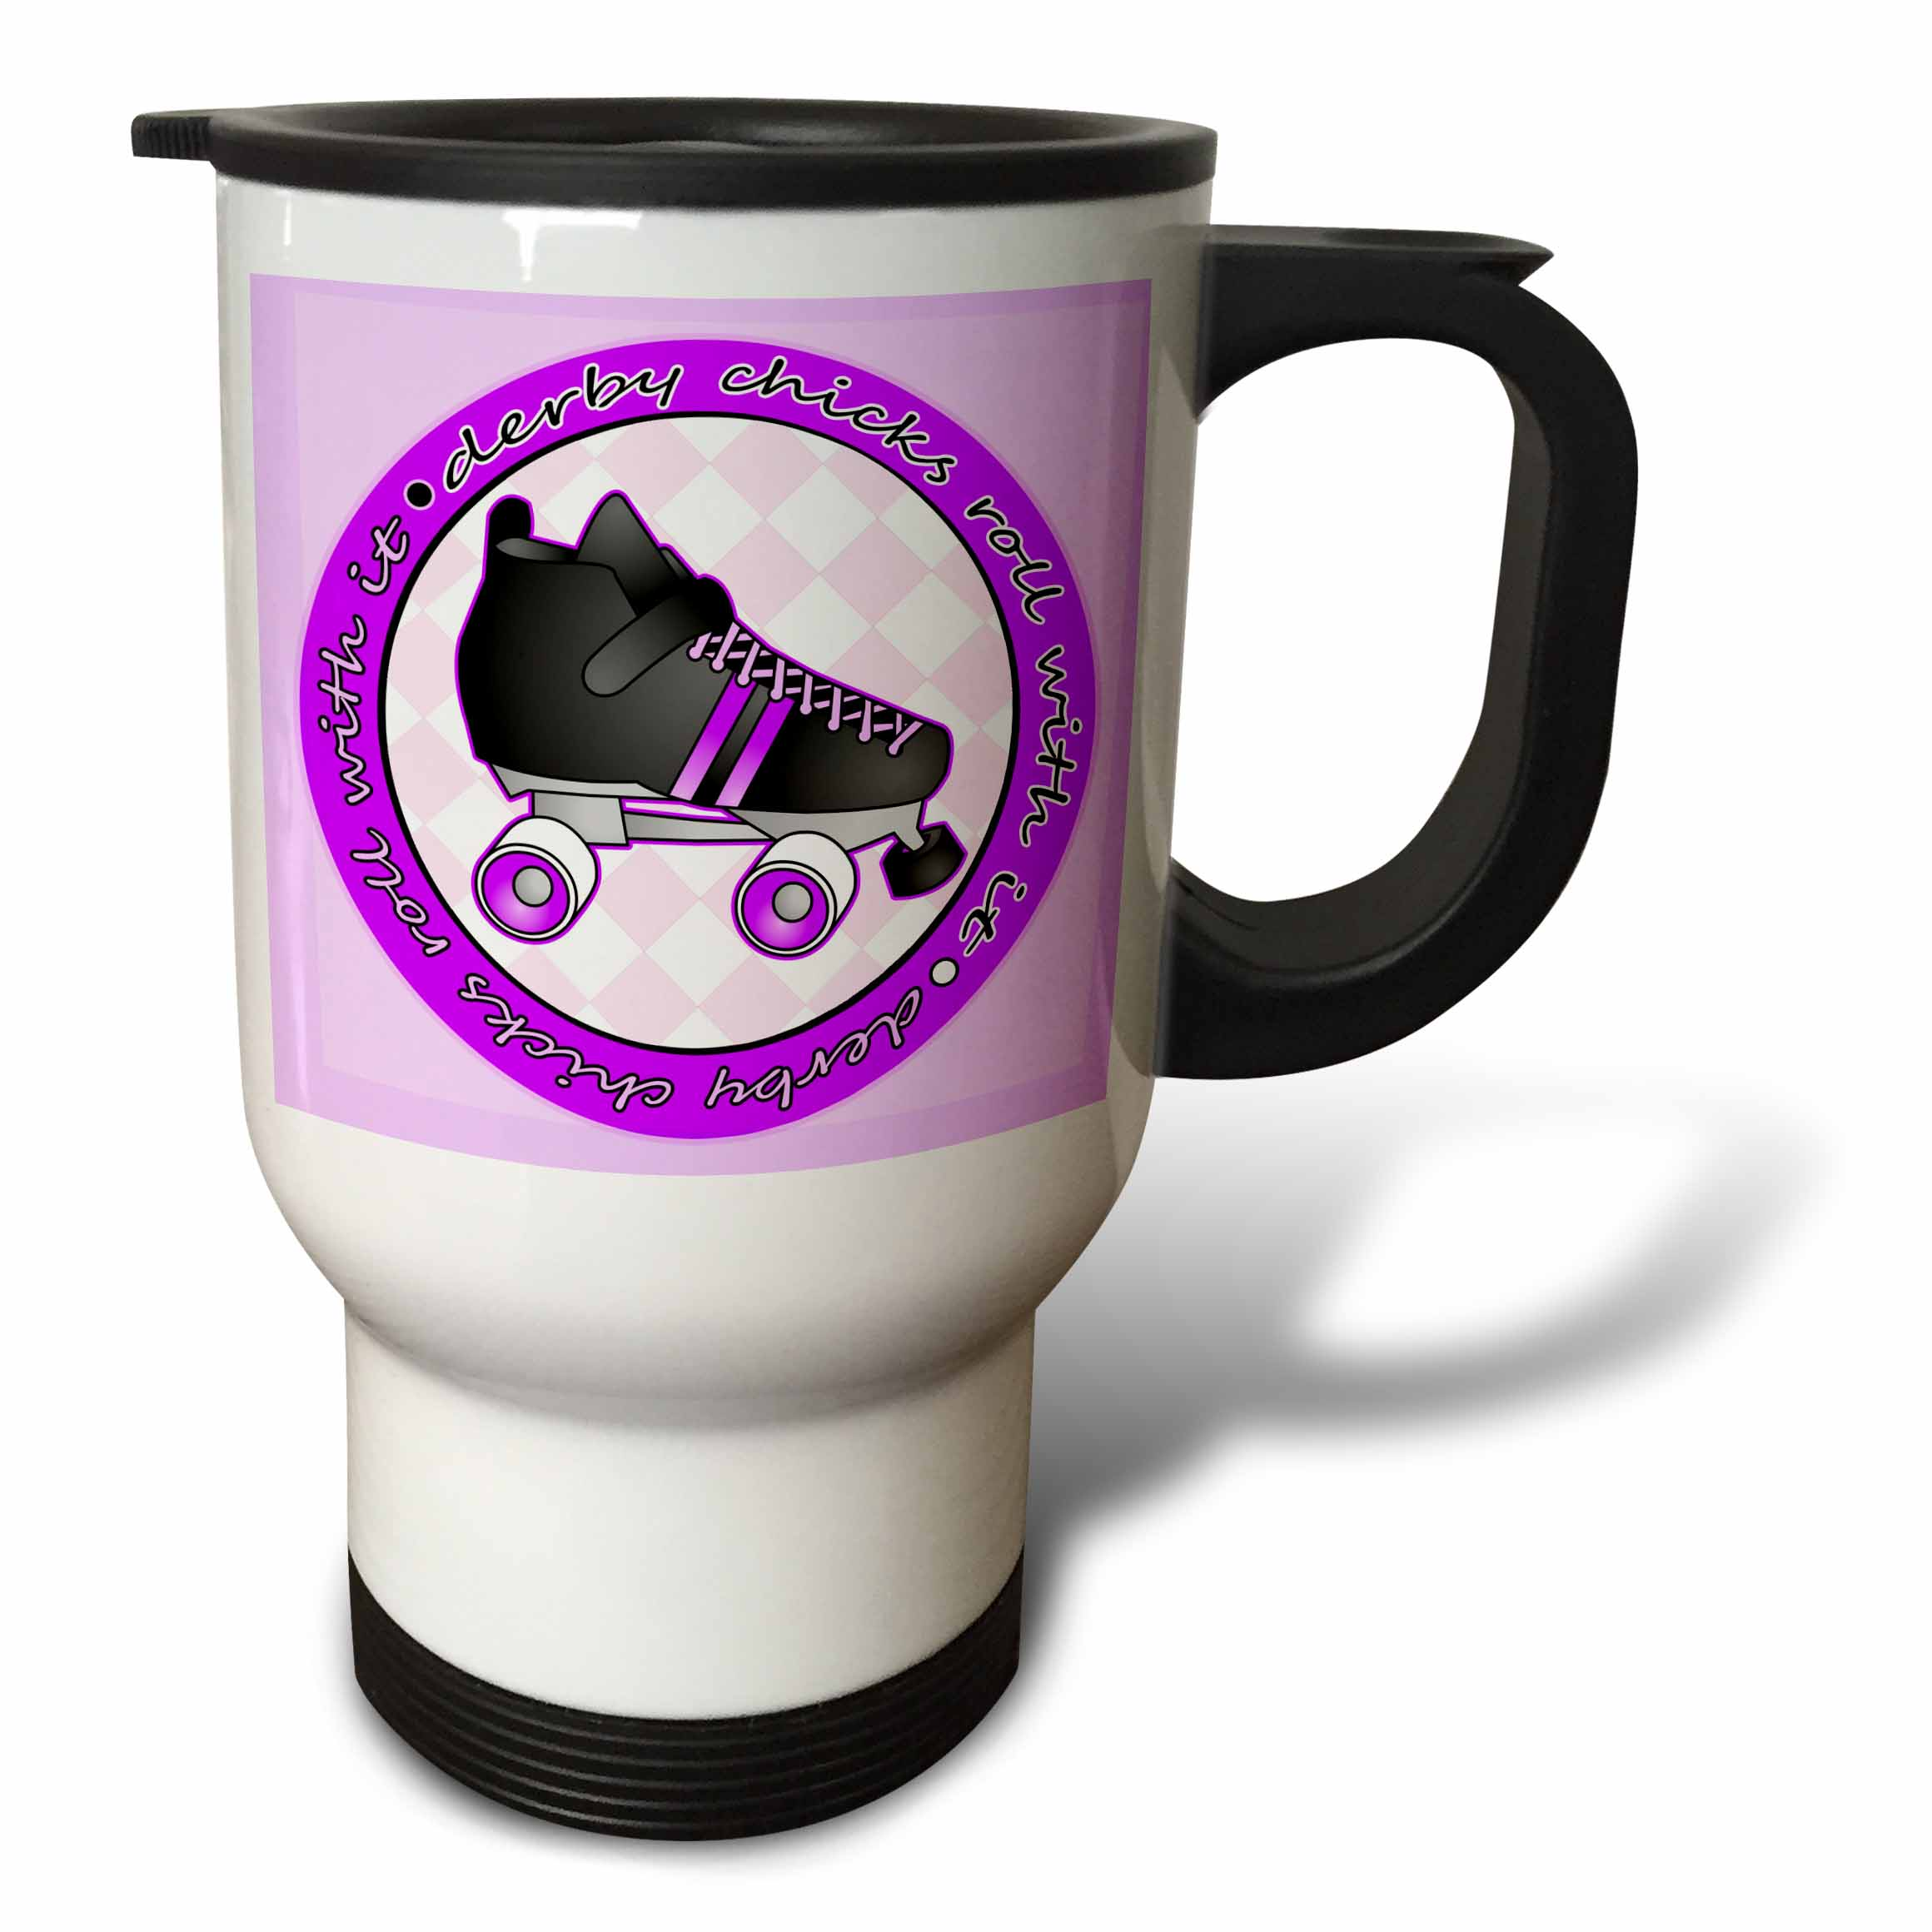 3dRose Derby Chicks Roll With It Purple with Black Roller Skate, Travel Mug, 14oz, Stainless Steel by 3dRose